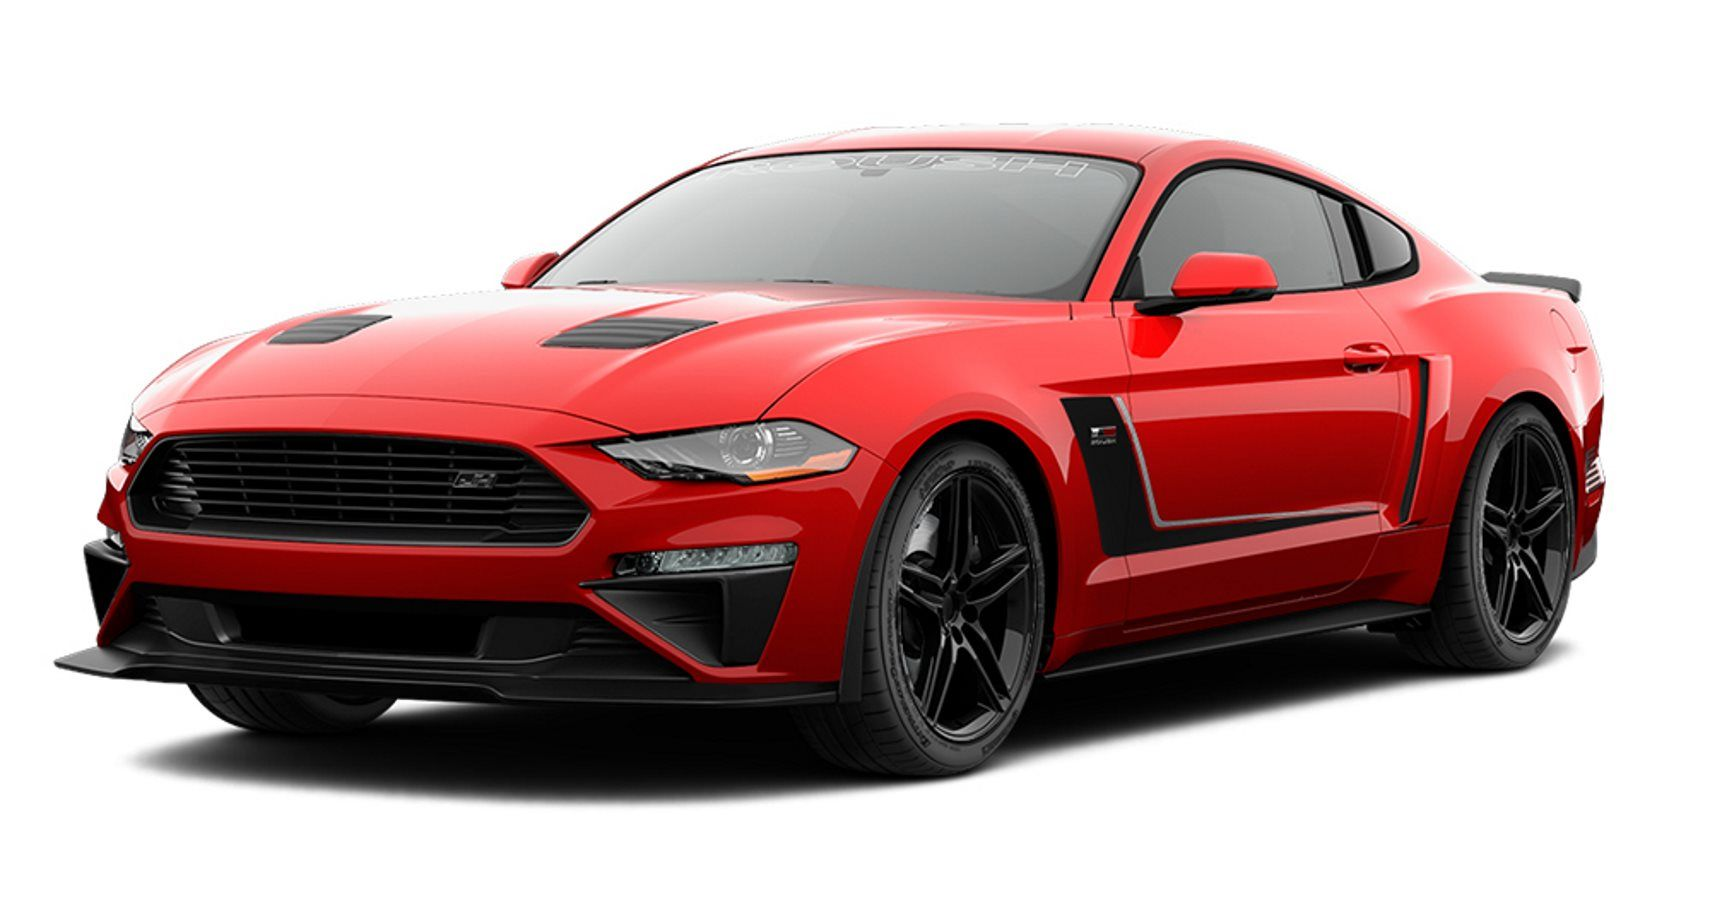 2018 Roush Jackhammer Ford Mustang Is A Beast Of A Car | HotCars